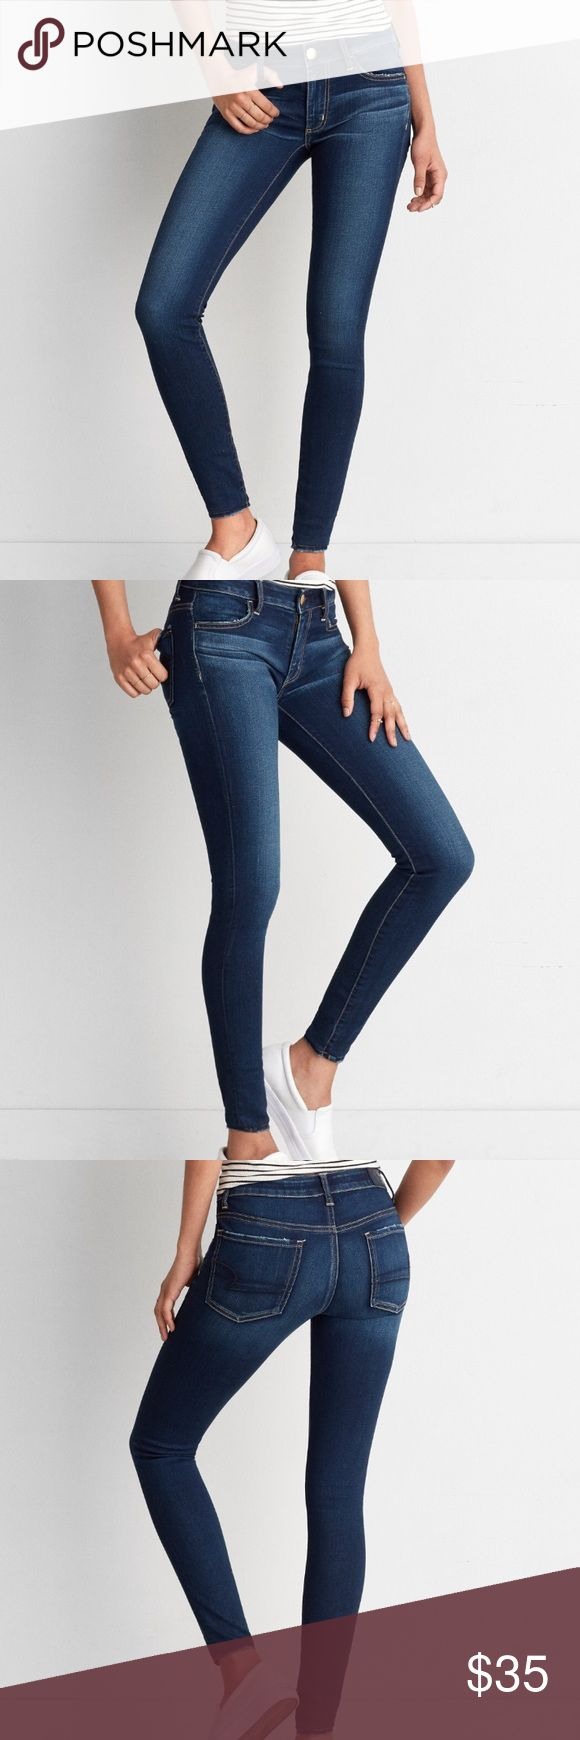 """AEO Denim X Jegging • NWOT, 6 Short, Super Stretch denim • High-performance stretch designed to hold its shape and hug your curves • Utilizes LYCRA® DualFX® technology for upgraded stretch  • Natural fibers give a super-soft feel & increased comfort • Low 8 3/4"""" rise • 13 7/8"""" back rise • 10"""" leg opening for a legging-like fit • Extended sizes available online • 60% Cotton, 21% Viscose, 17% Polyester, 2% Elastane • Machine Wash American Eagle Outfitters Pants Skinny"""